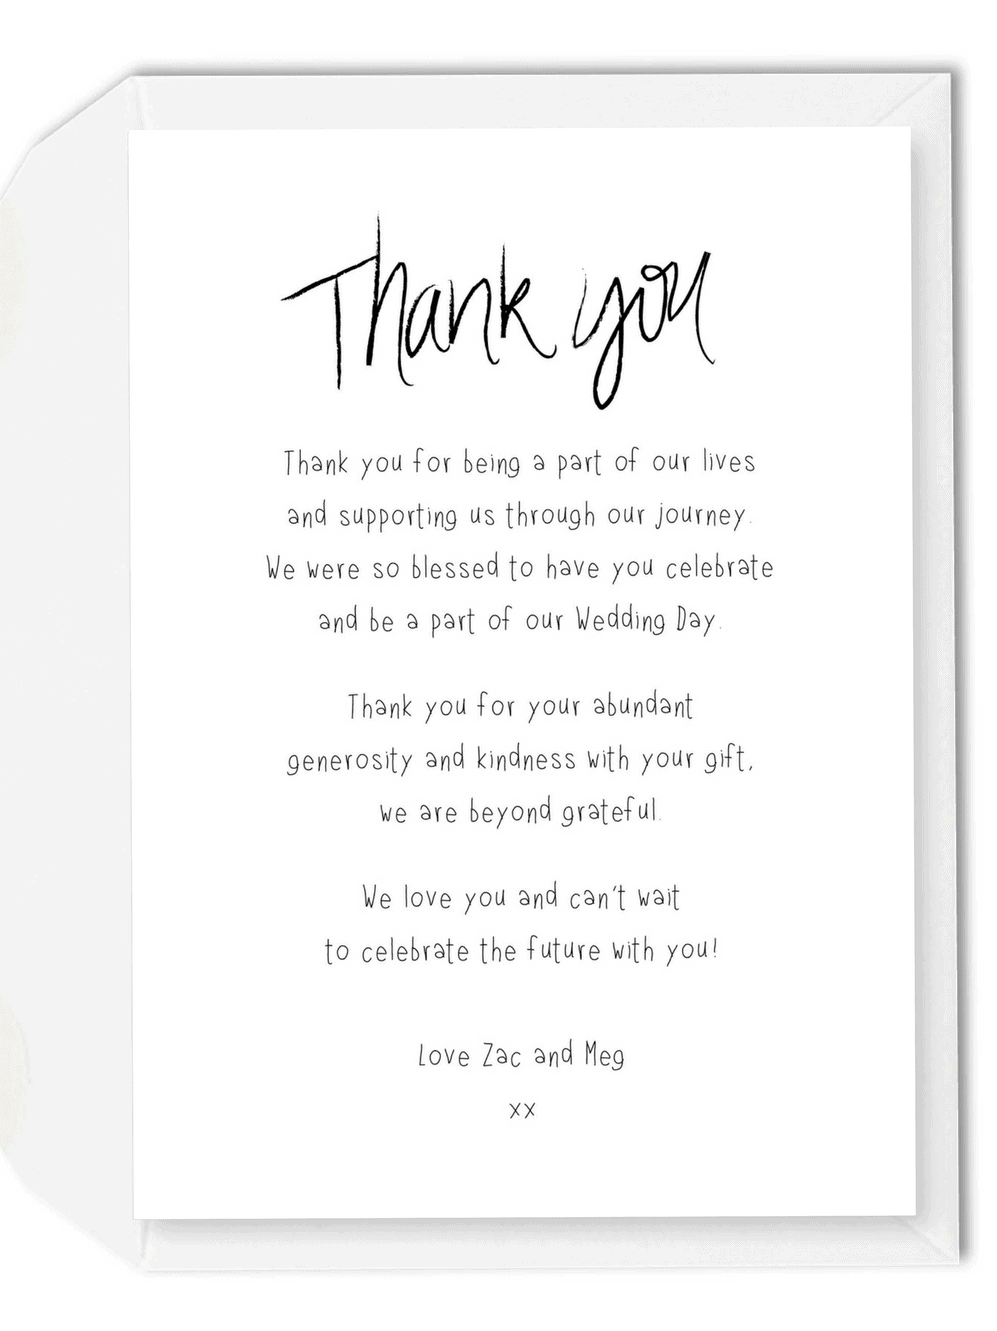 how to write wedding thank you cards - Boat.jeremyeaton.co